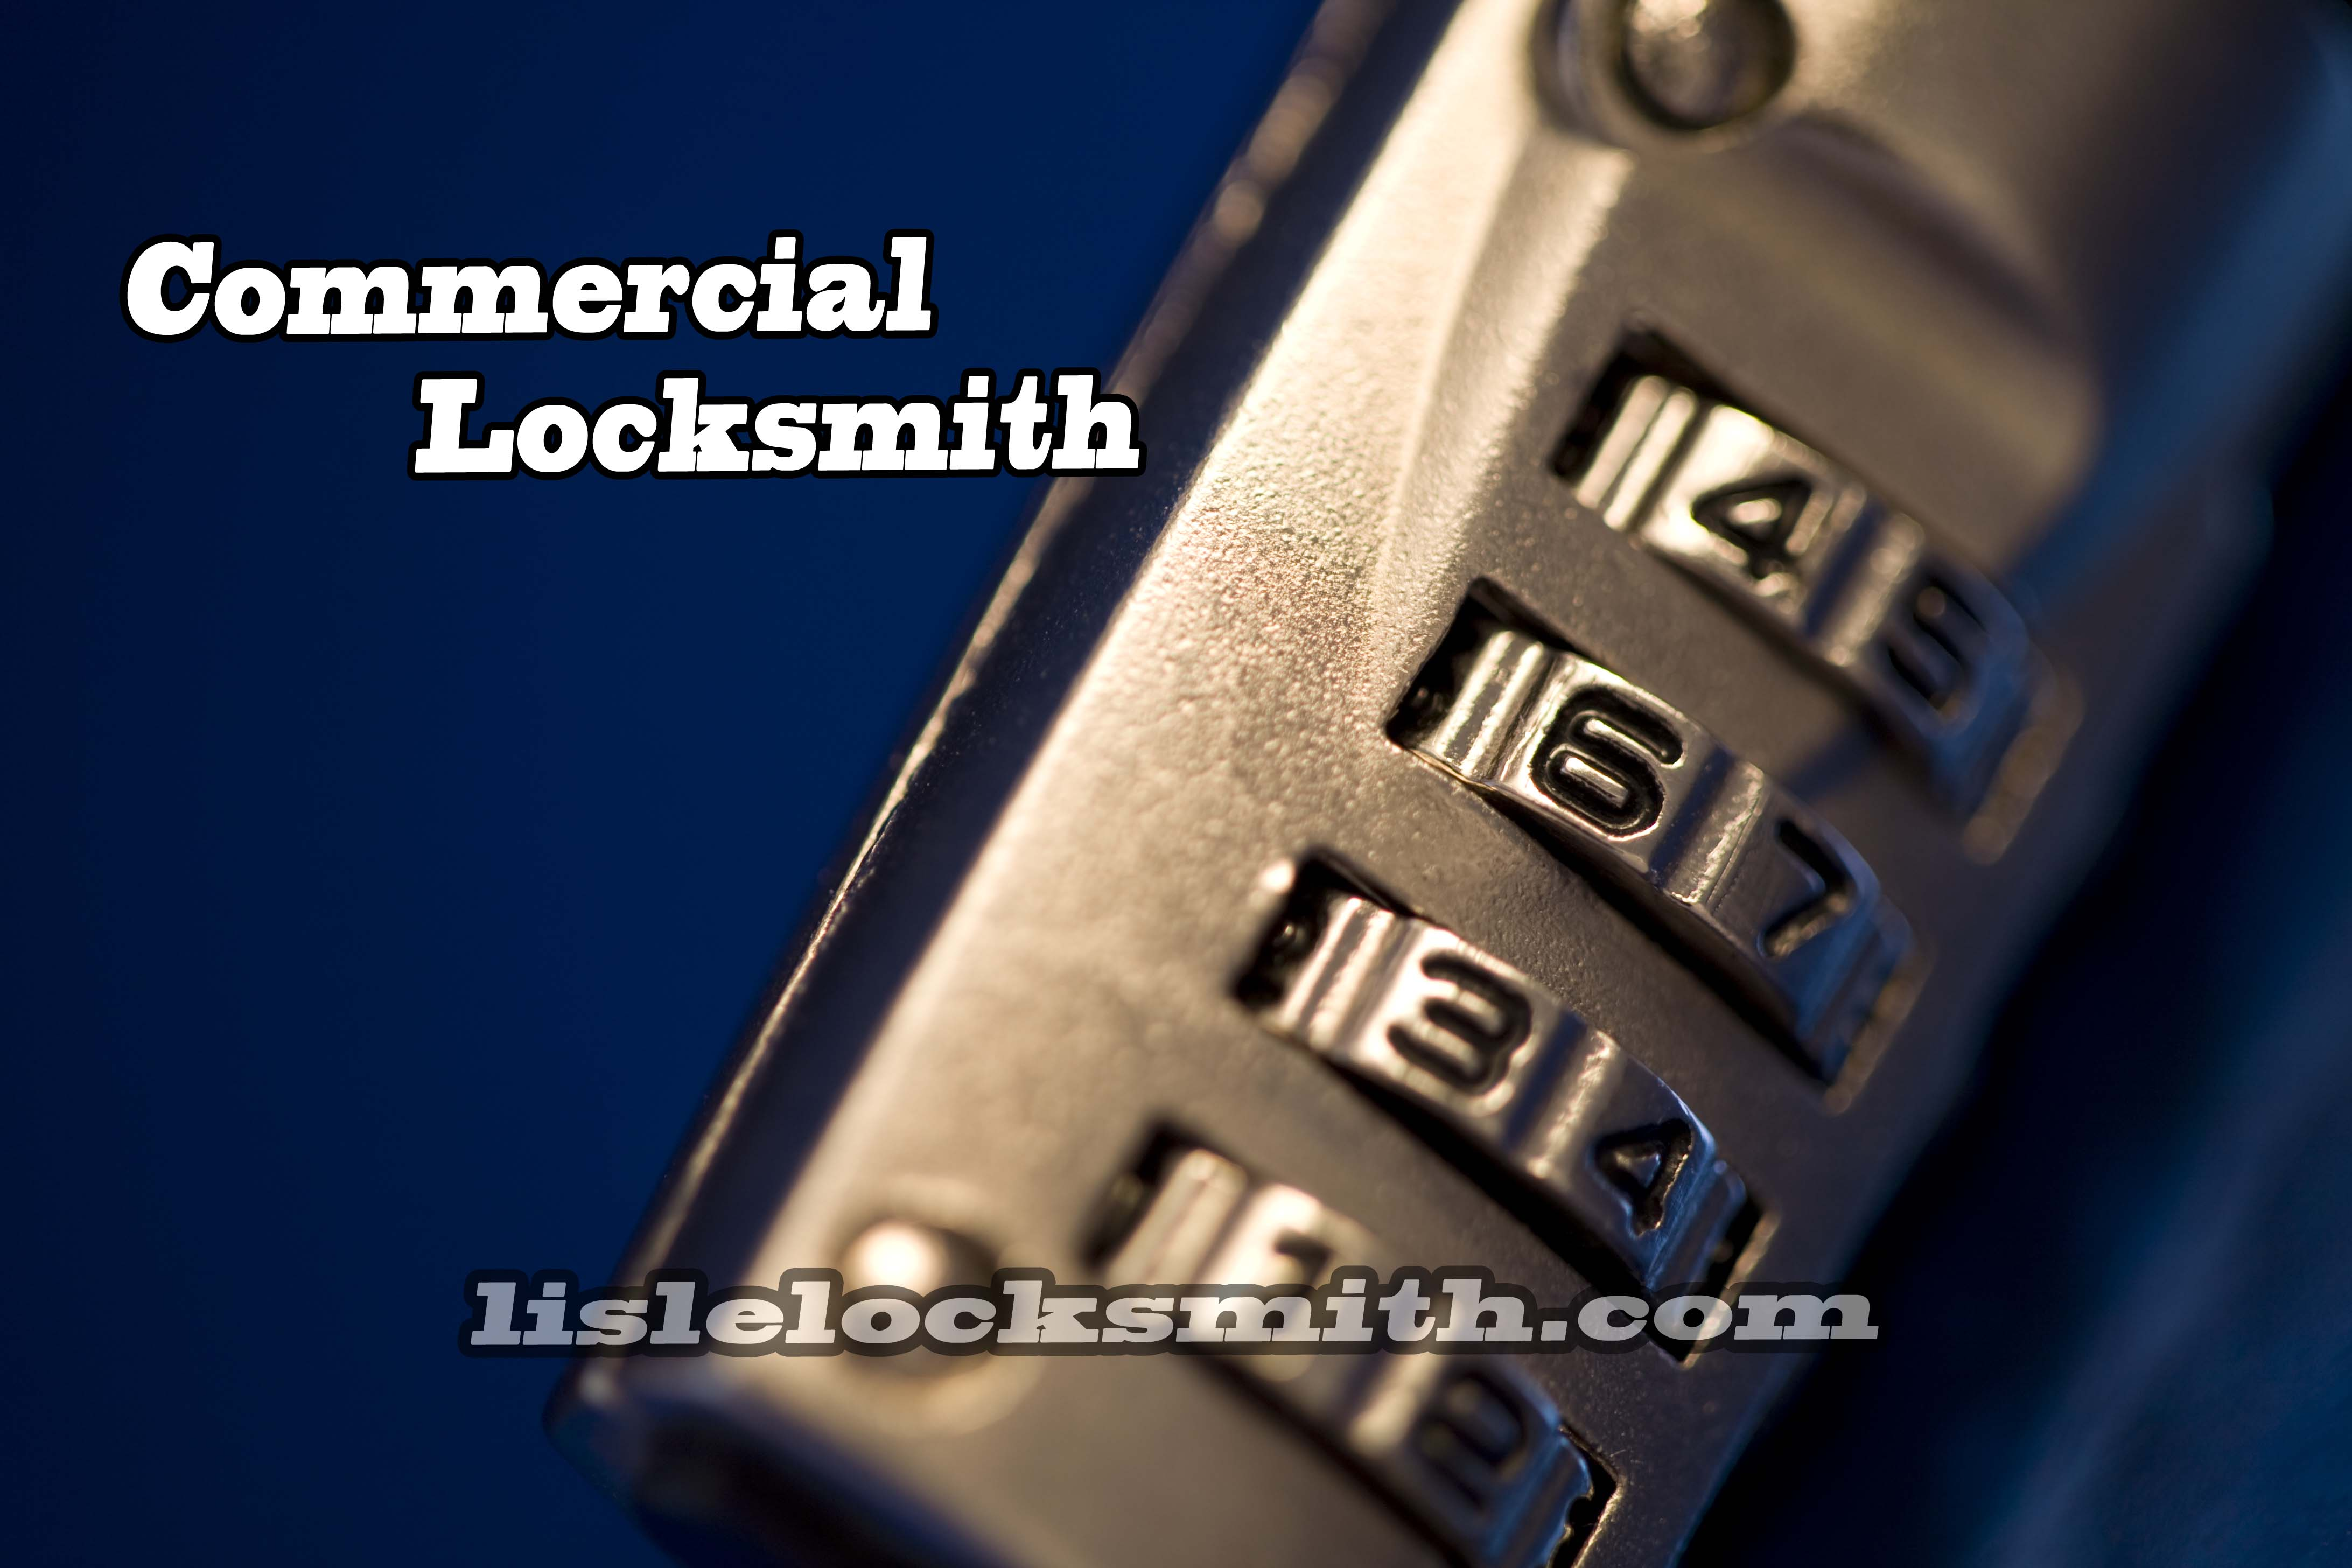 Lisle Locksmith Commercial Services